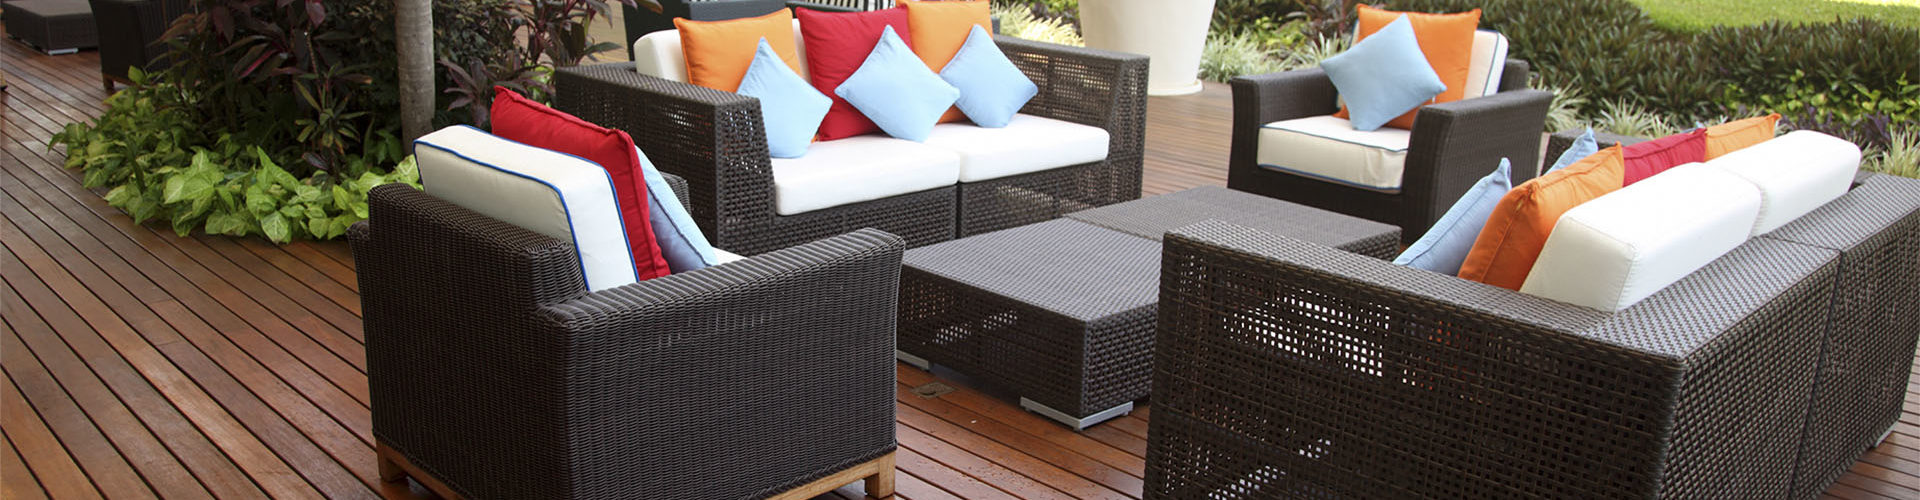 How to Clean Patio Furniture Efficiently